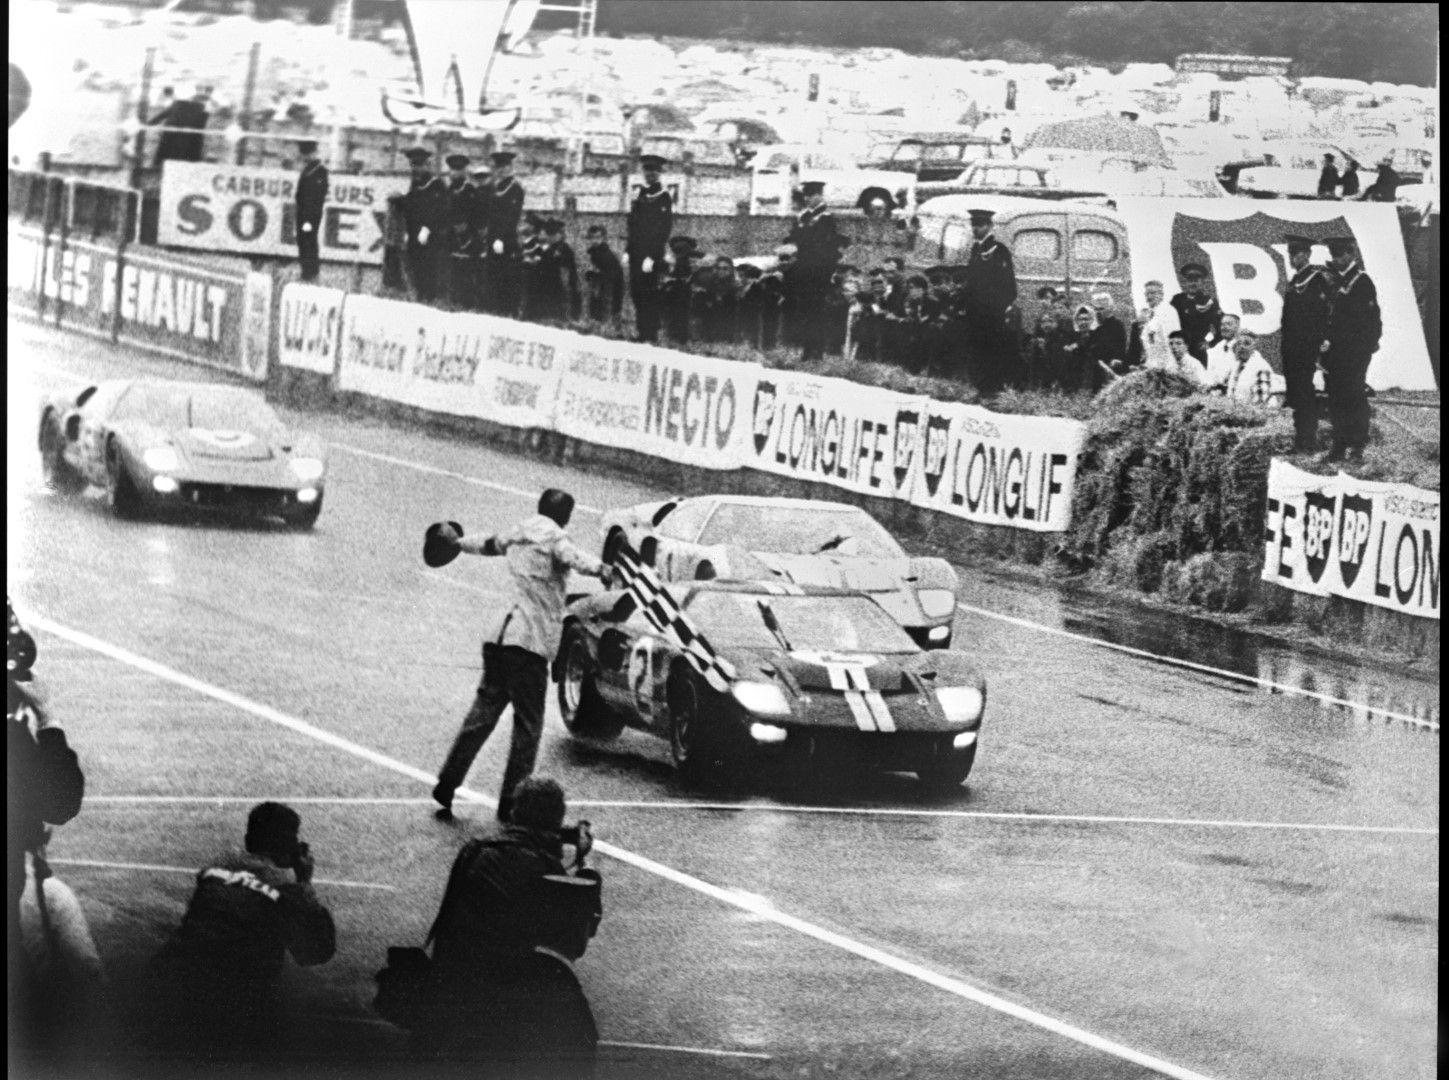 Trio Of Ford Gt40 Mk Iis Cross Finish Line At Le Mans 1966 Ford Gt40 Le Mans Ford Gt